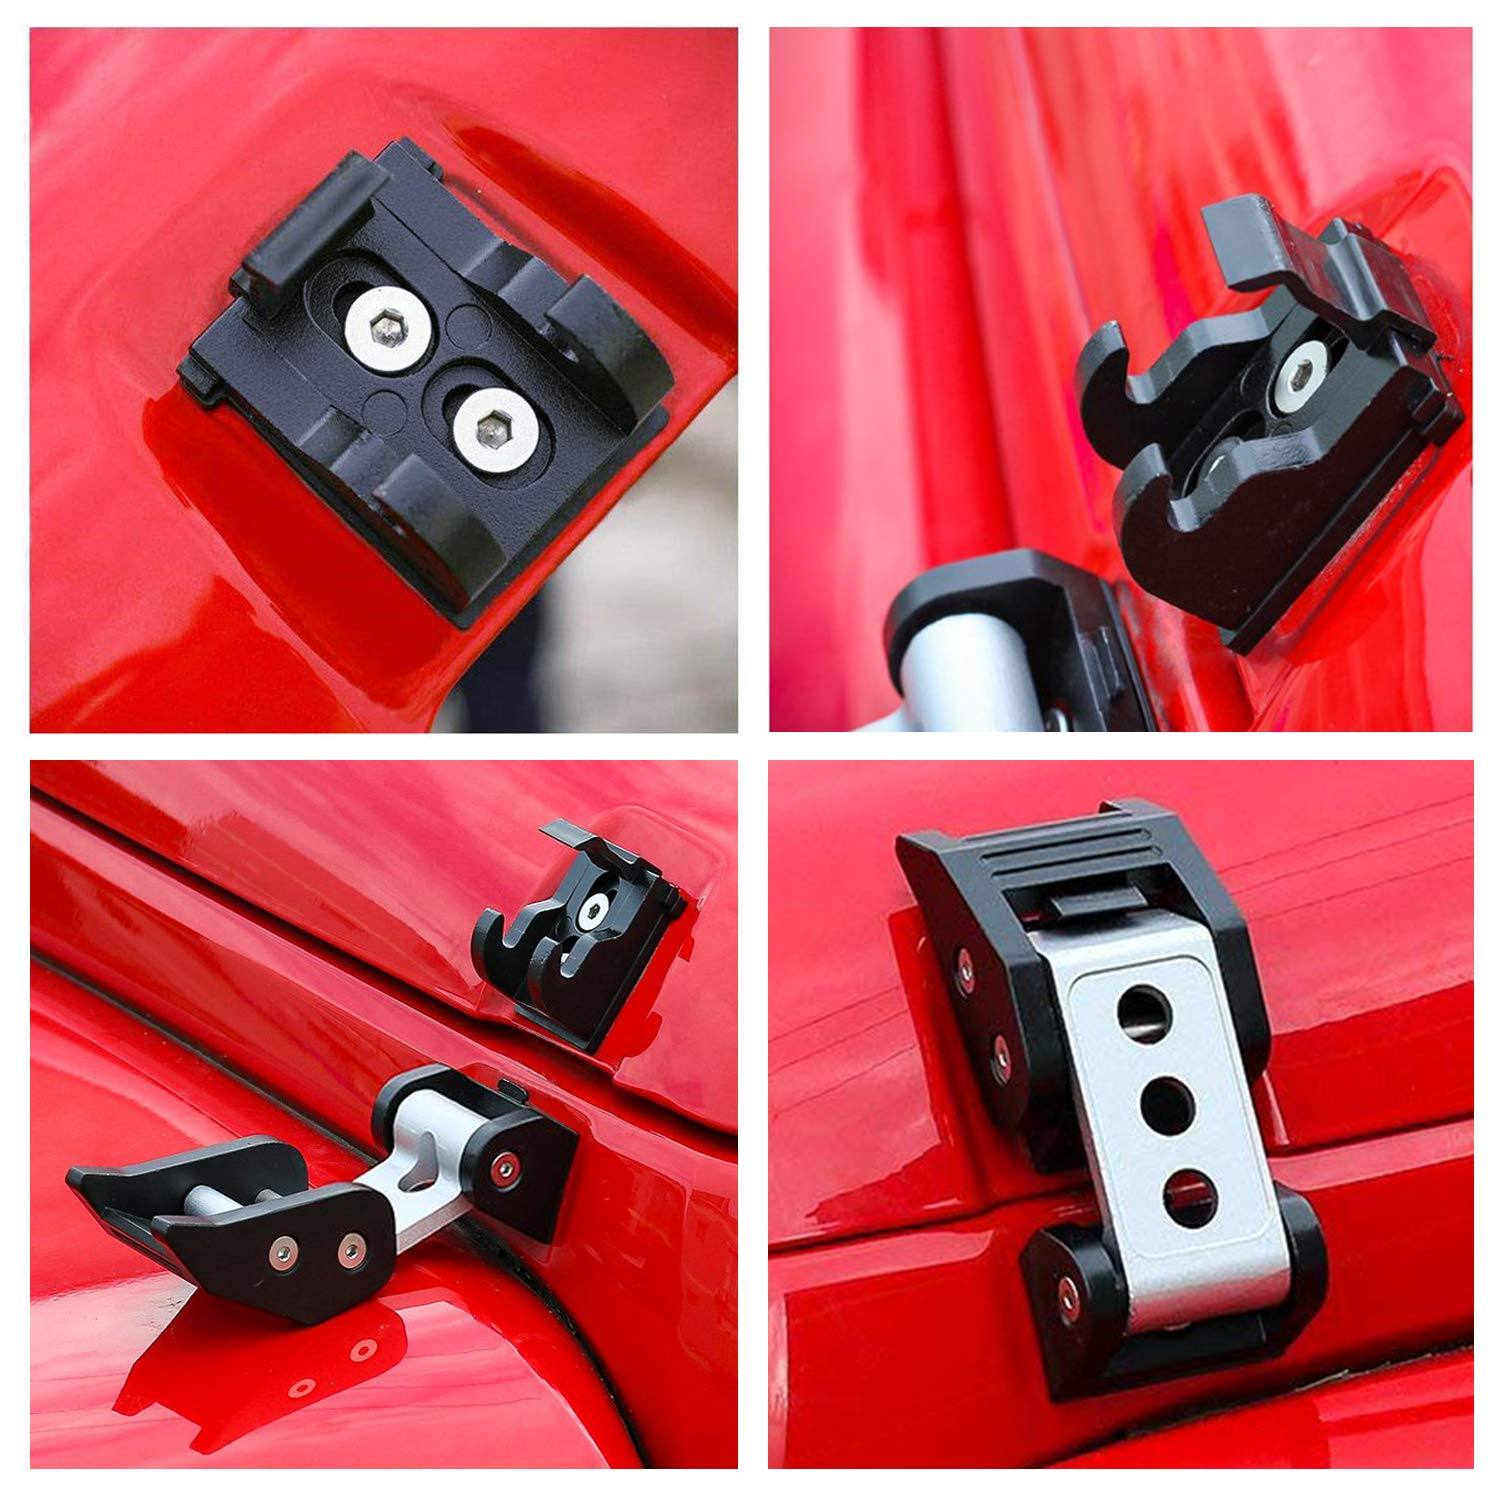 Silver YOUAN Aluminum Jeep Wrangler Hood latches Locking Hood Catch Kit for 2007-2018 JK /& Unlimited